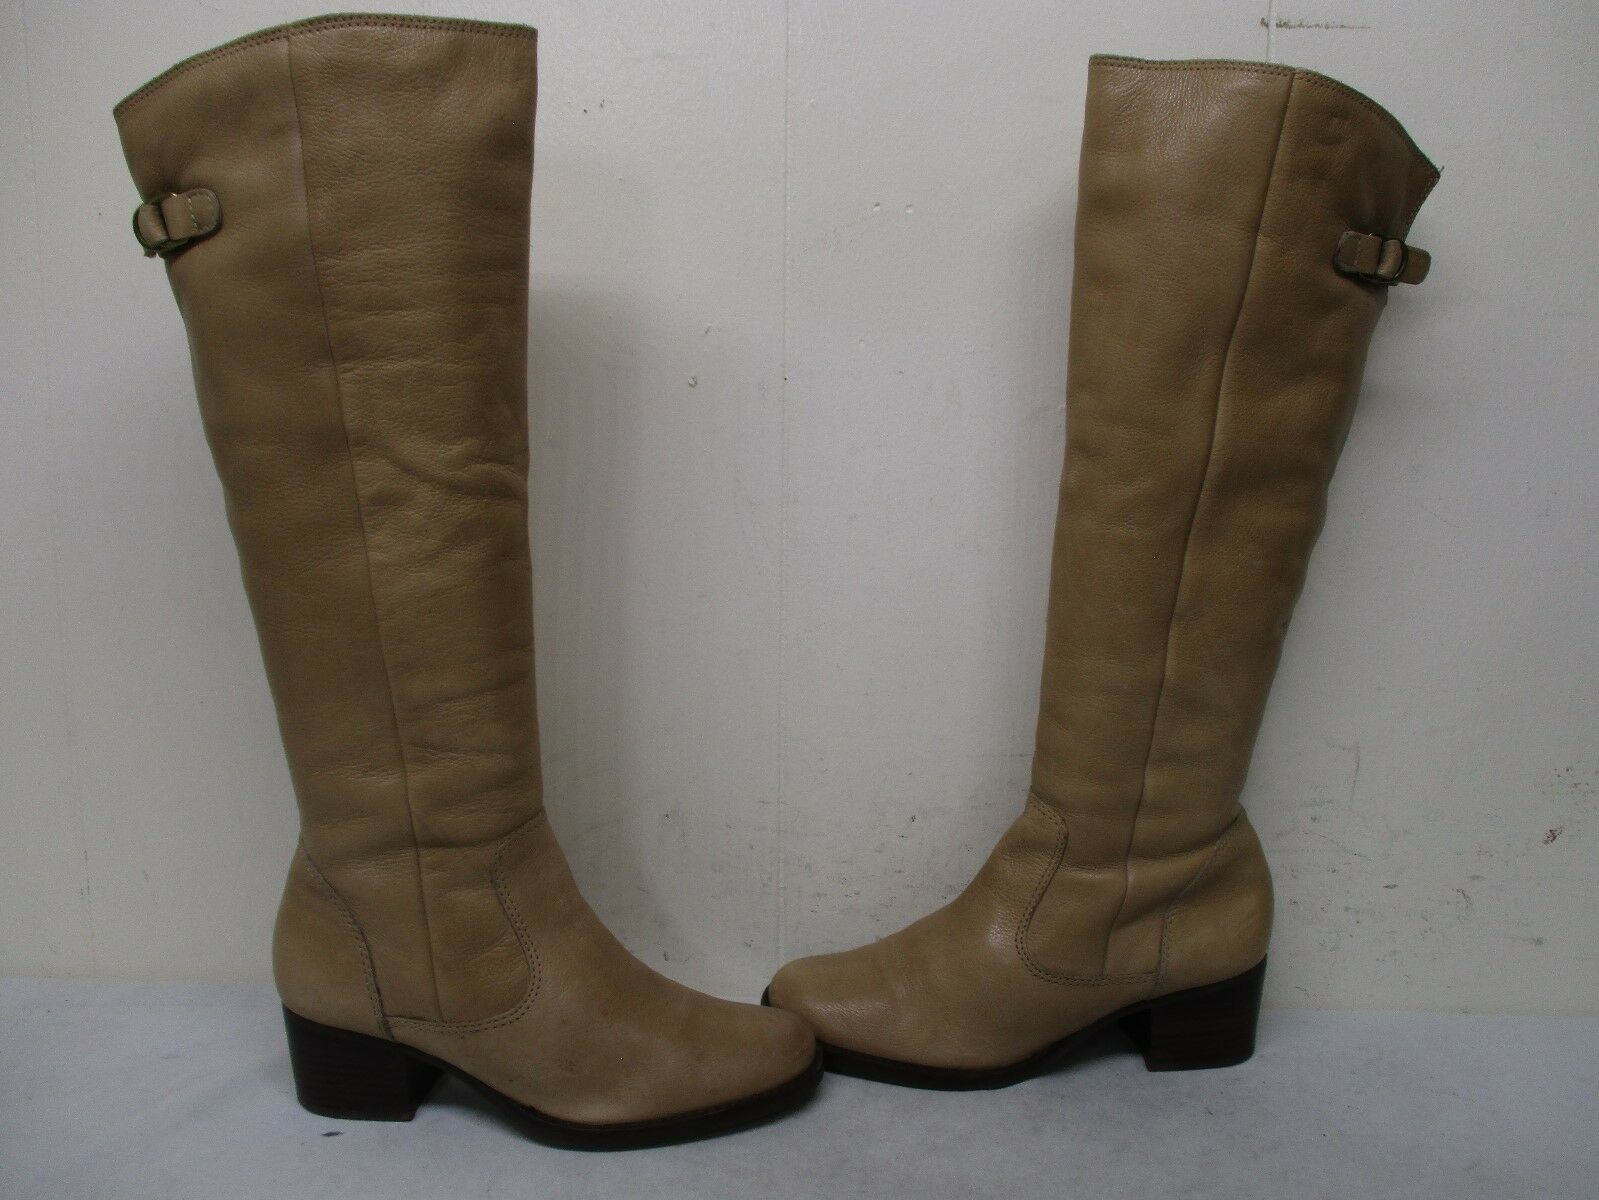 Matisse Rio Grande Tan Leather Knee High RIding Boots Womens Size 6.5 M